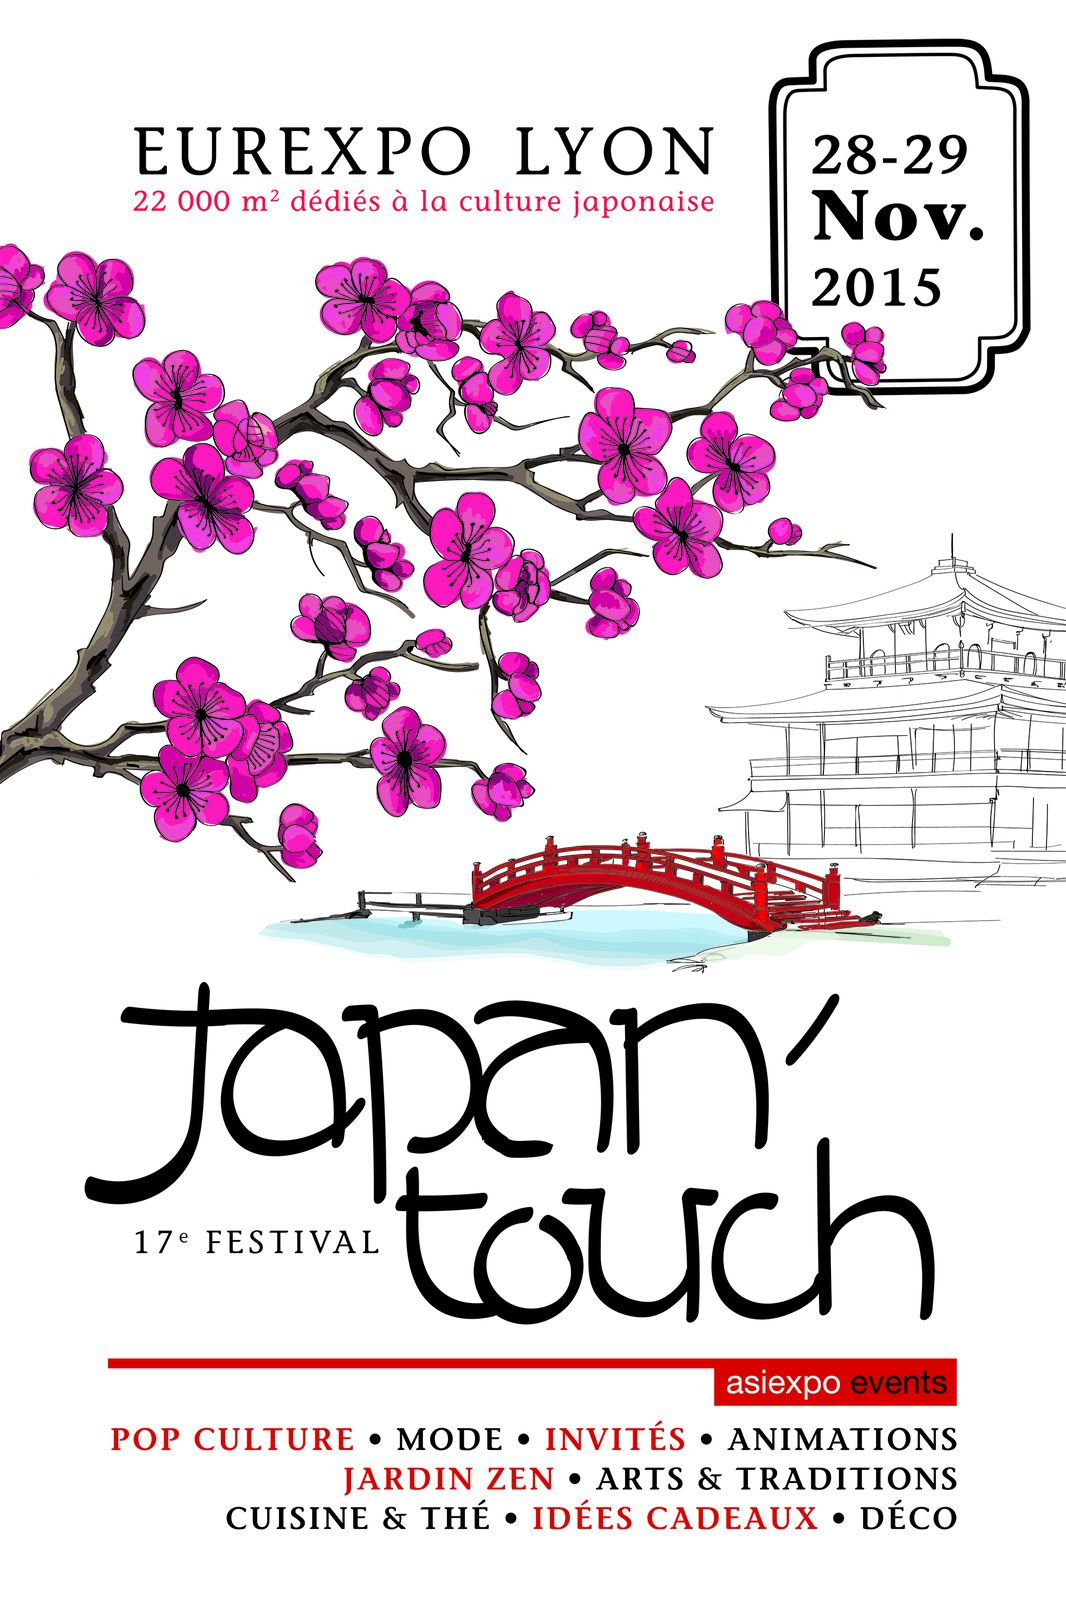 Japan touch site sur la science fiction et le fantastique for Salon lyon eurexpo